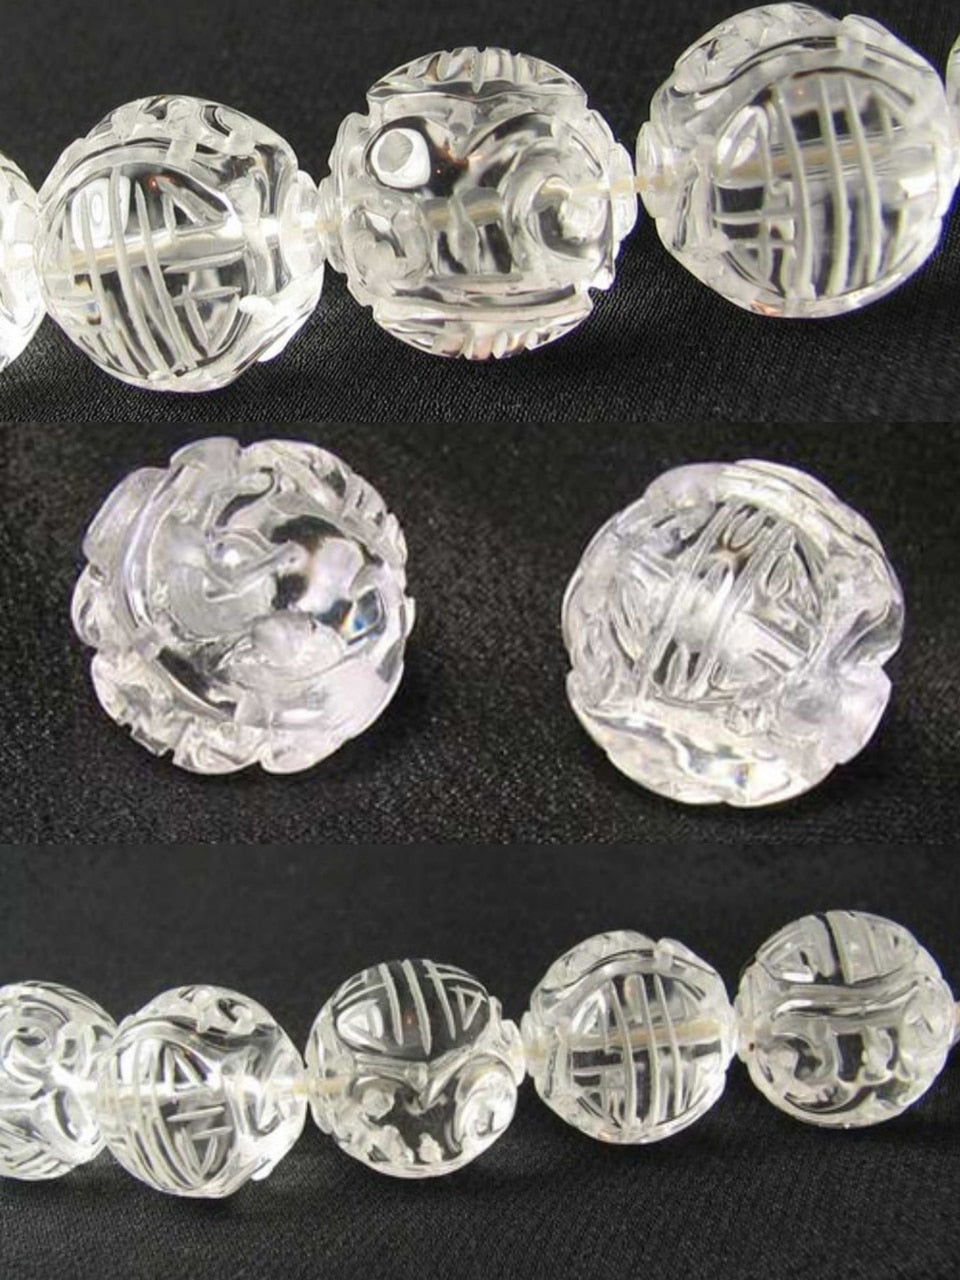 1 Unique Hand Carved Long Life Natural Quartz 20mm 10357 | 20mm | Clear - PremiumBead Primary Image 1